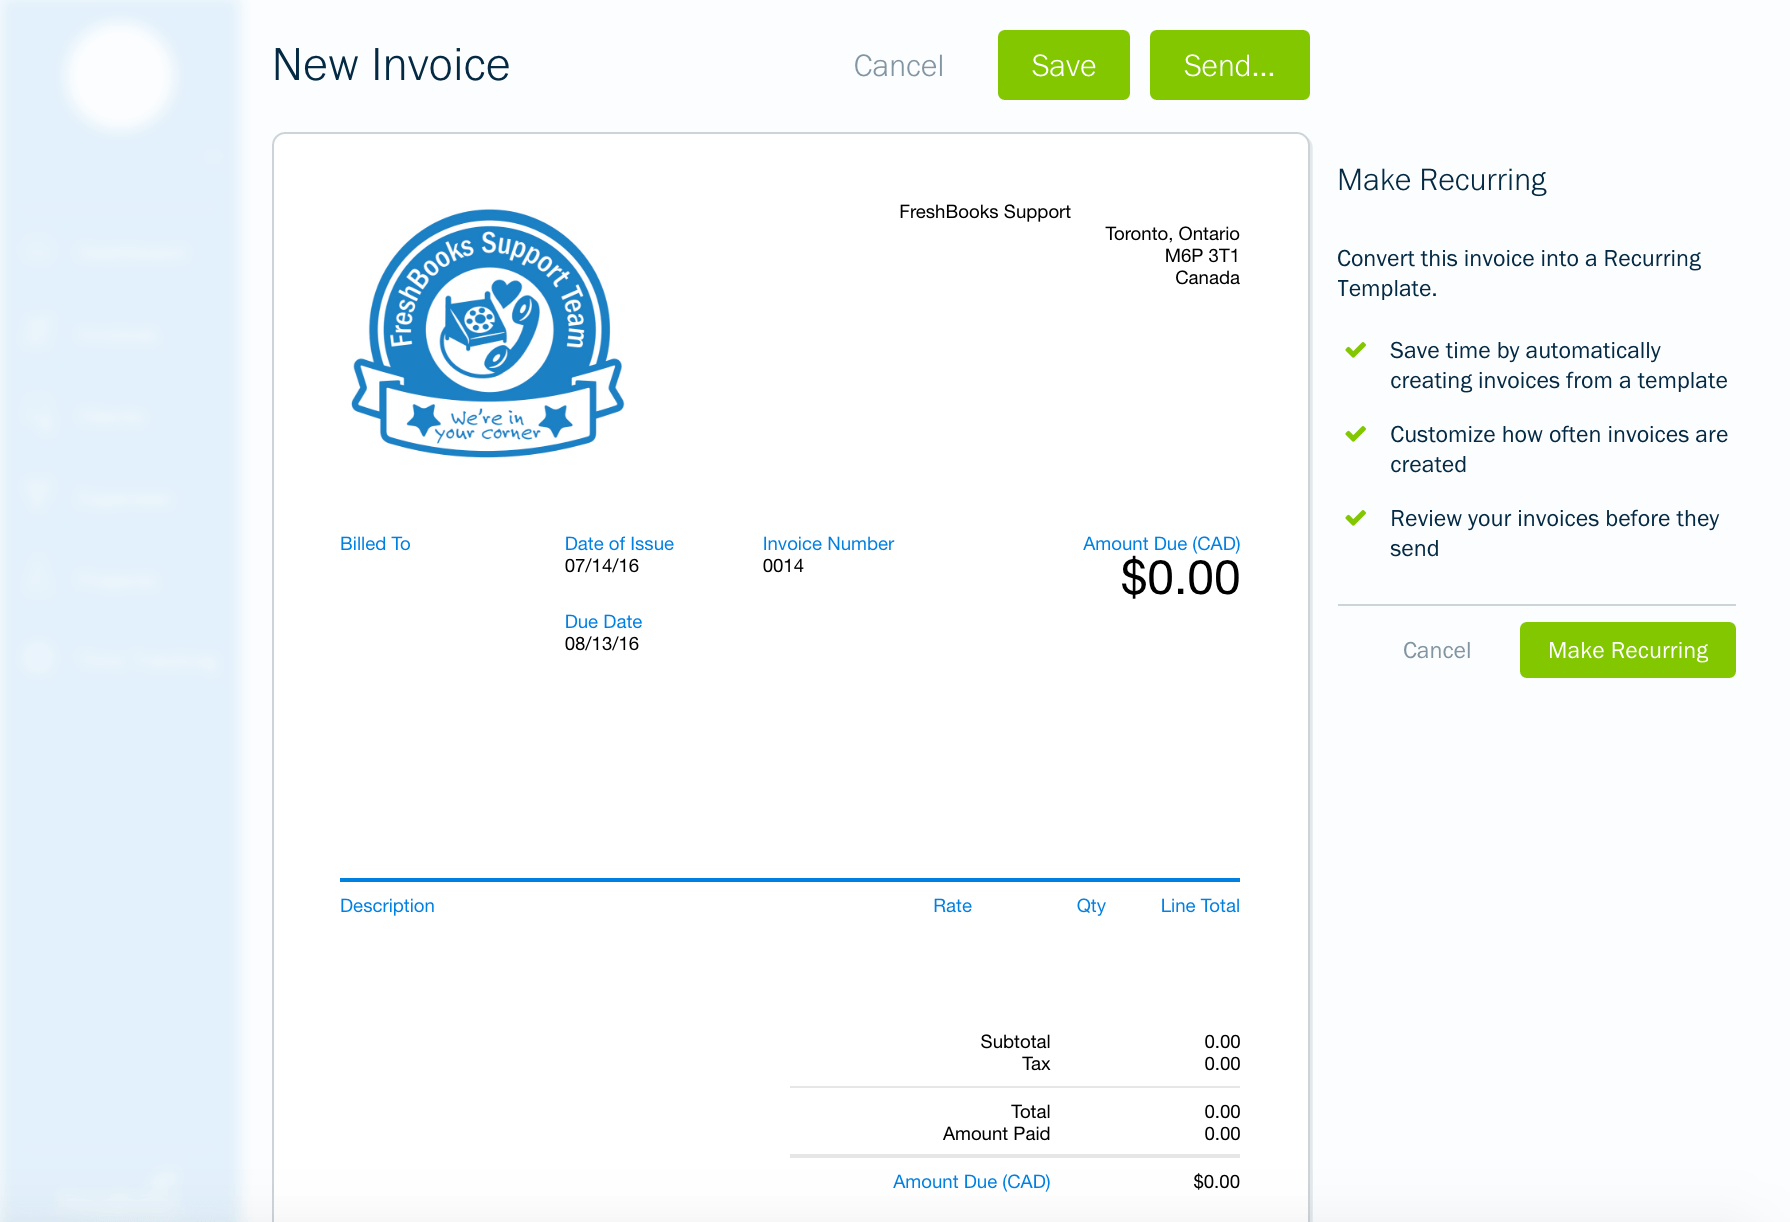 Billing And Invoicing Software   Freshbooks  How To Do Invoices